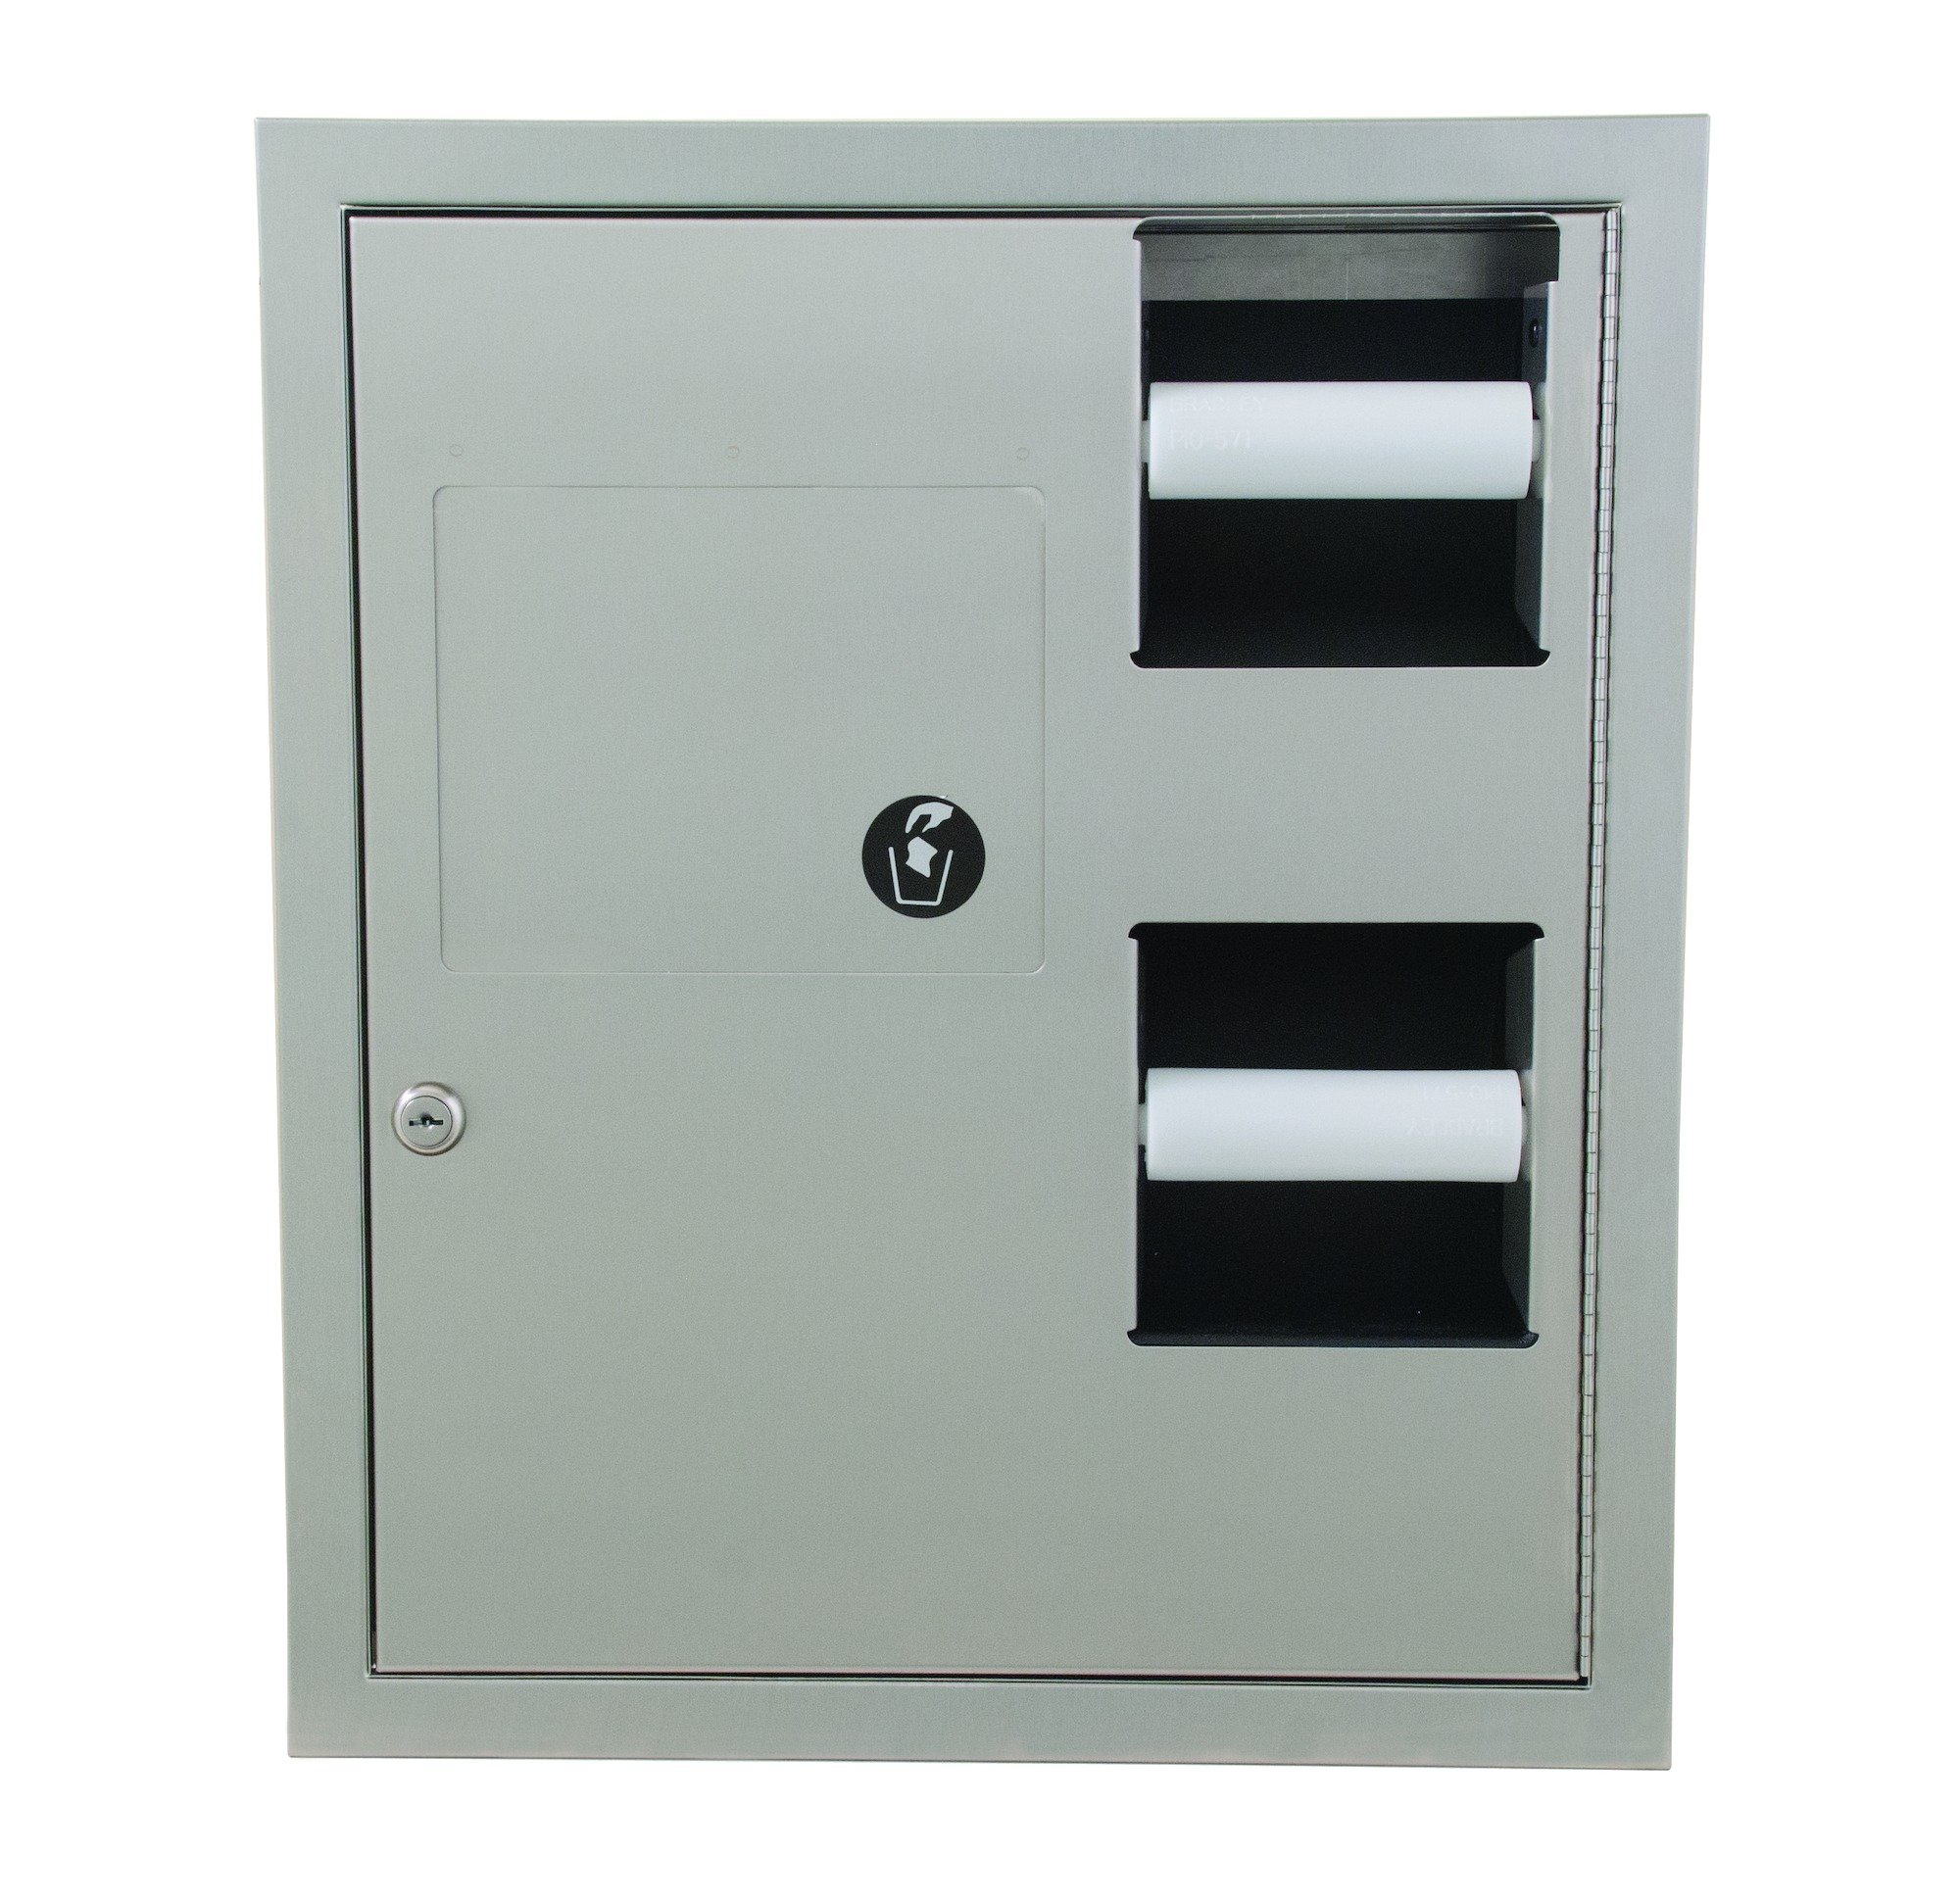 Surface mounted paper towel dispenser and waste receptacle 5942-110000 | Accurate Door & Hardware, Inc